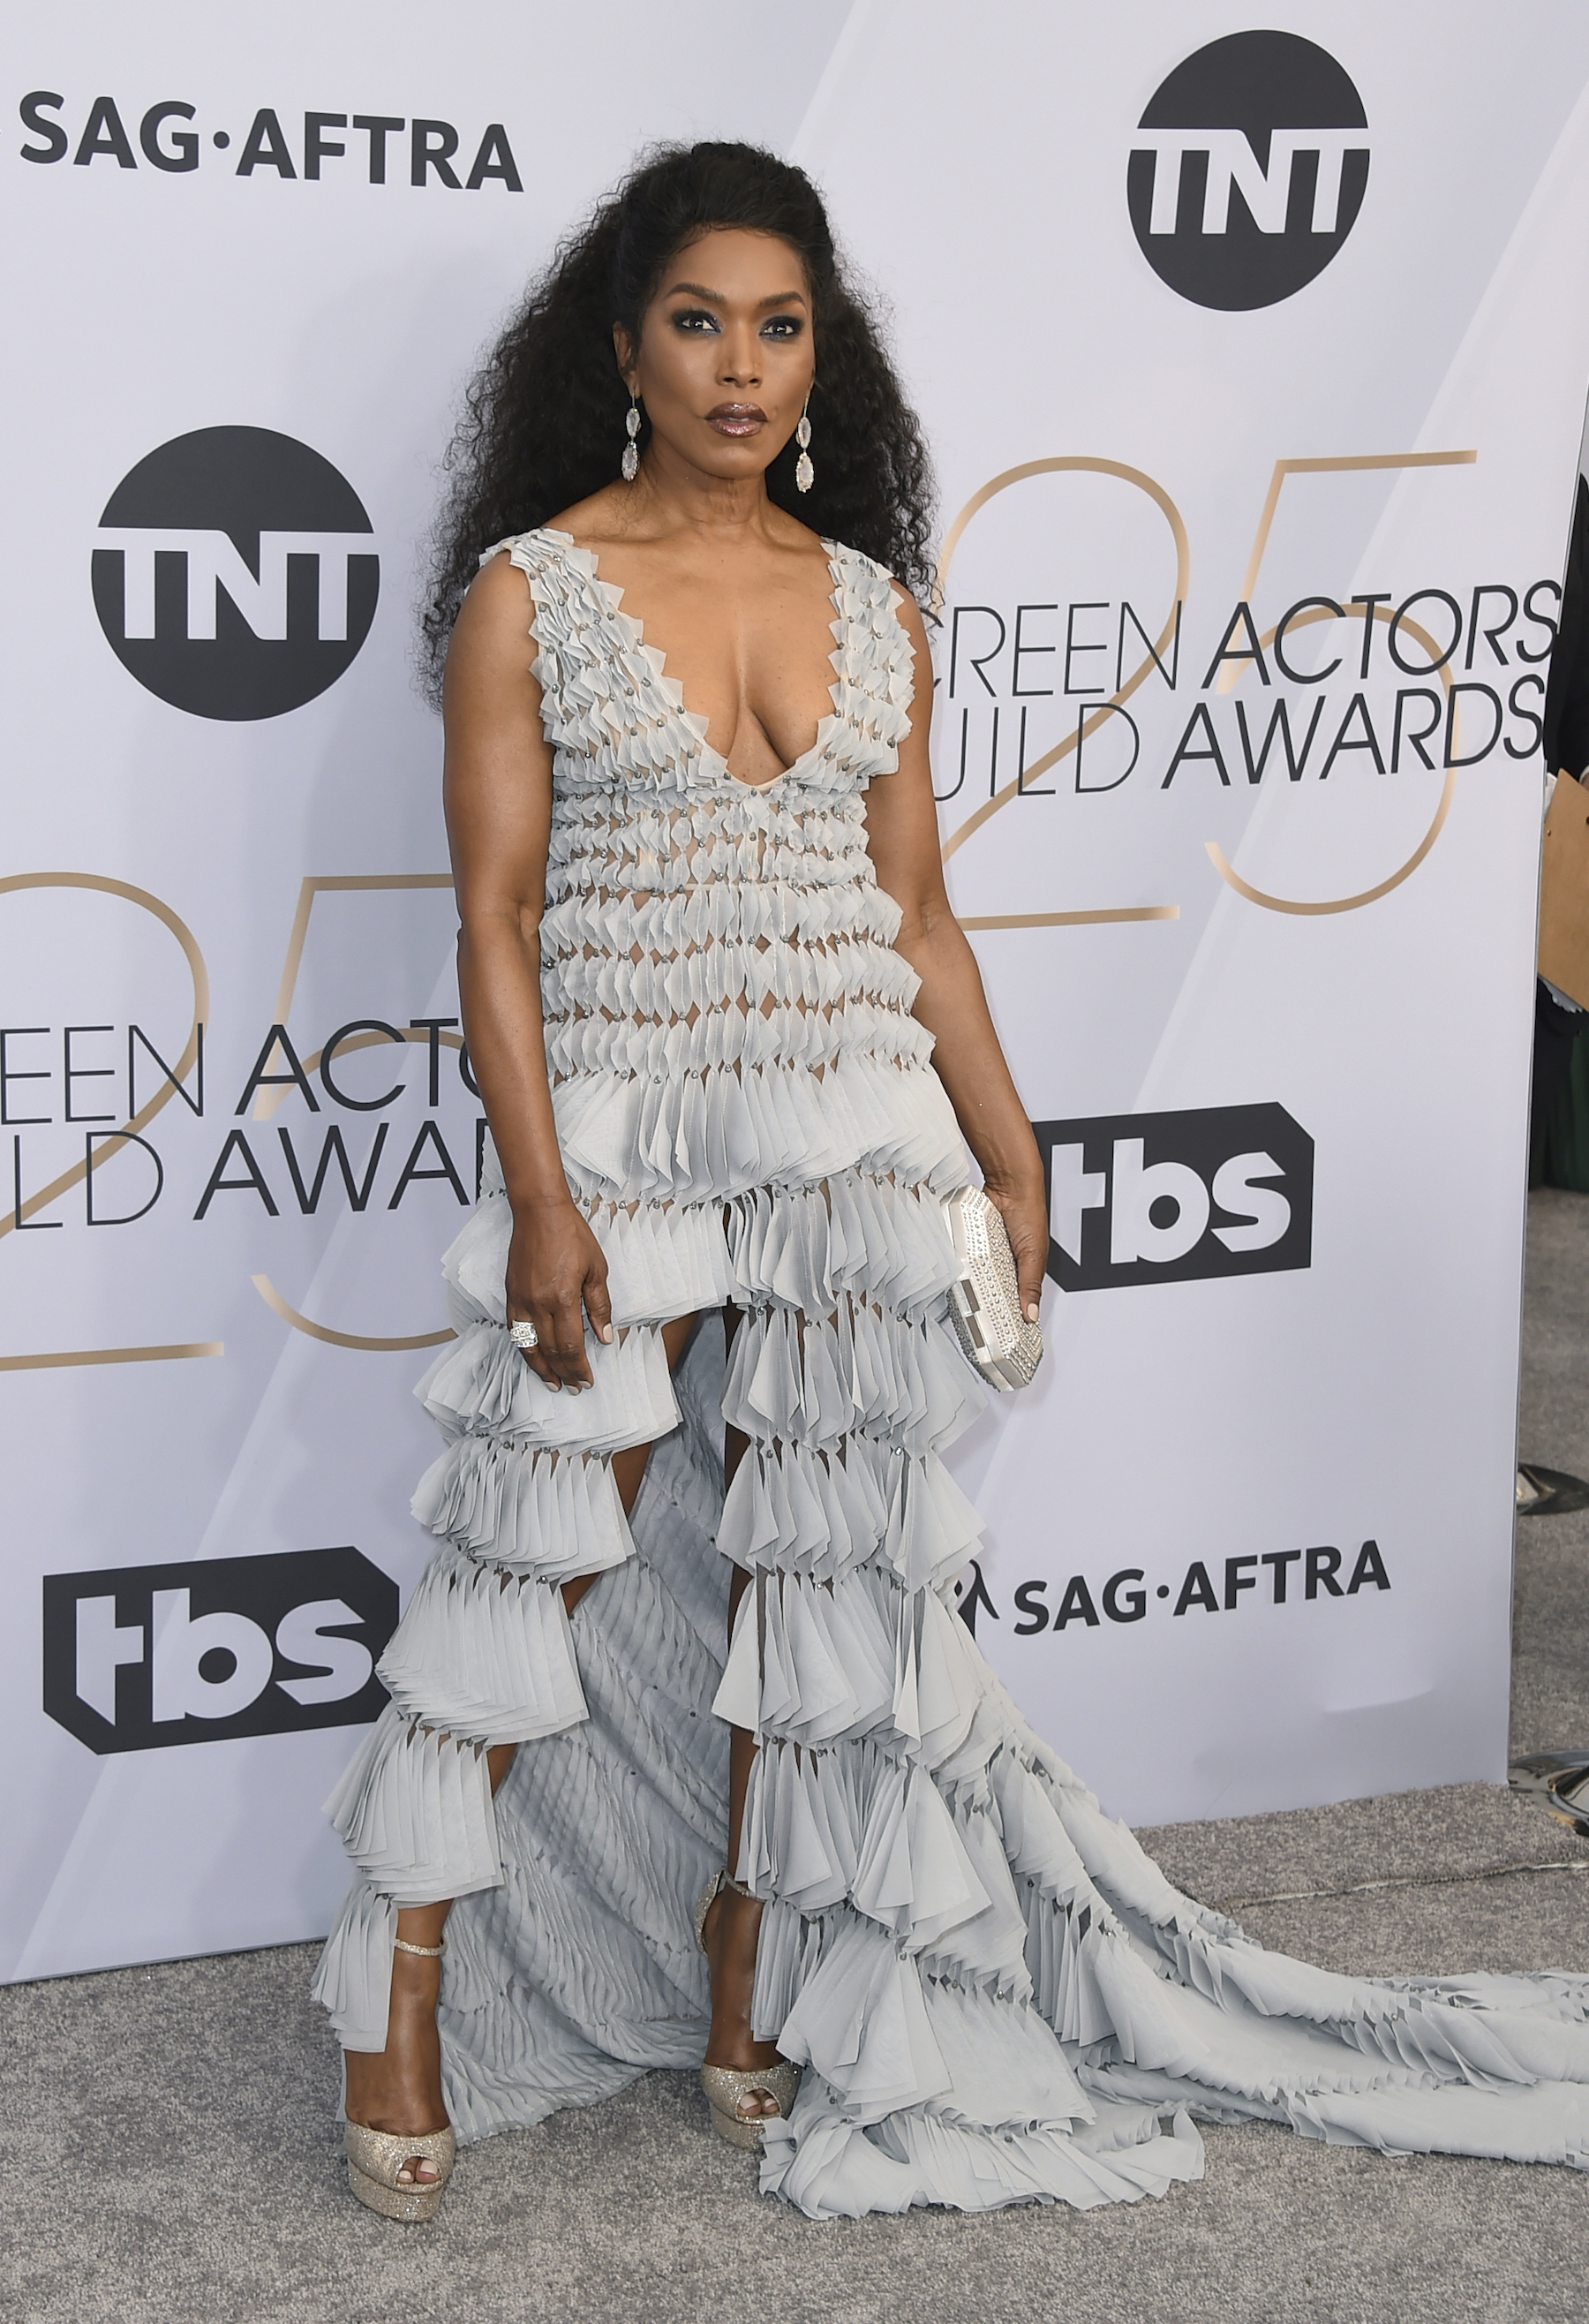 <div class='meta'><div class='origin-logo' data-origin='AP'></div><span class='caption-text' data-credit='Jordan Strauss/Invision/AP'>Angela Bassett arrives at the 25th annual Screen Actors Guild Awards at the Shrine Auditorium & Expo Hall on Sunday, Jan. 27, 2019, in Los Angeles.</span></div>